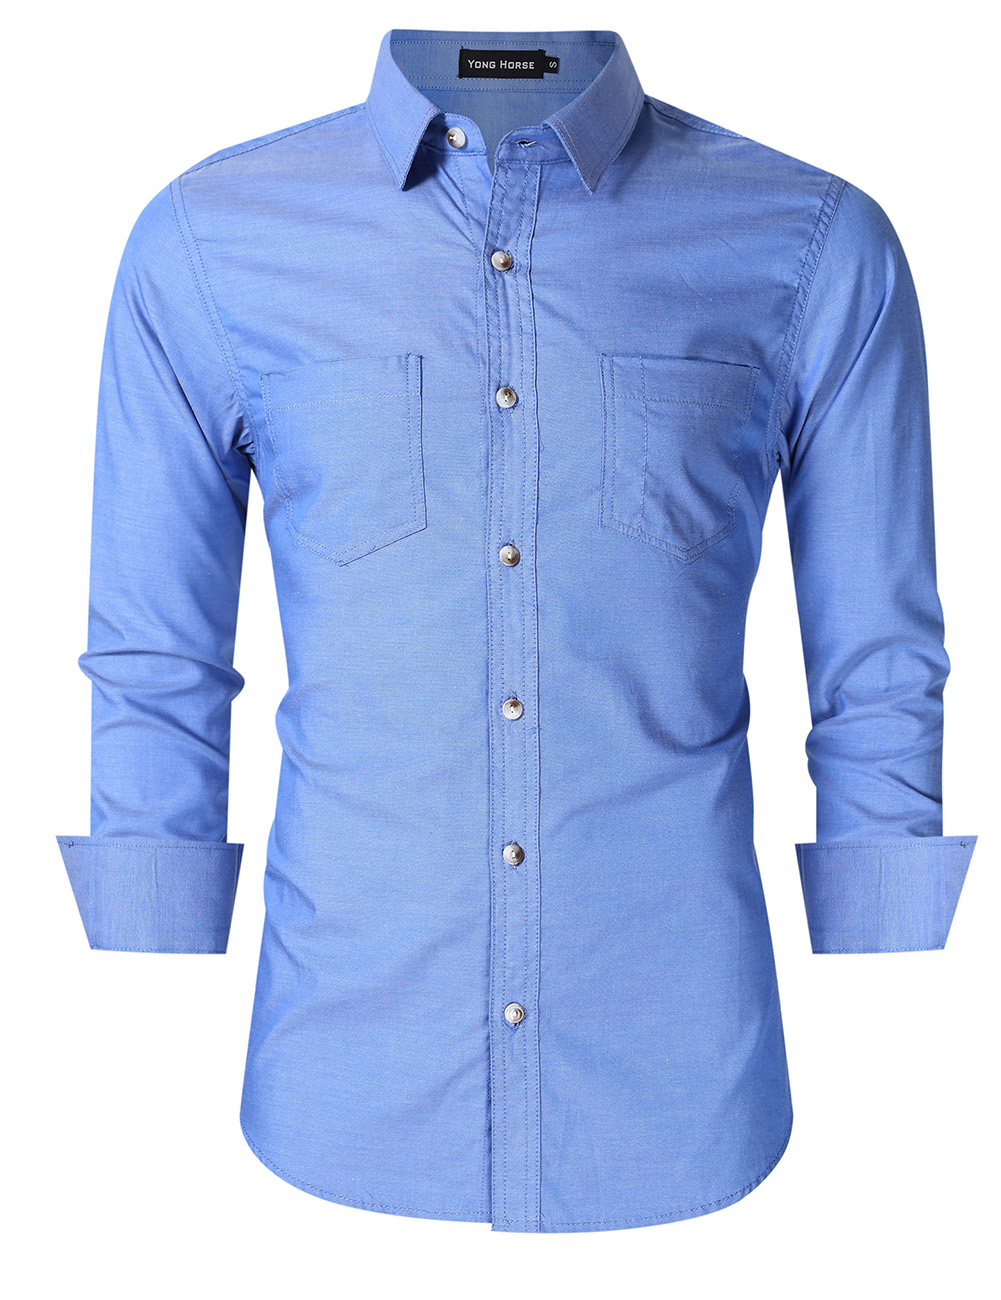 Yong Horse Men's Classic Oxford Shirts Blue S